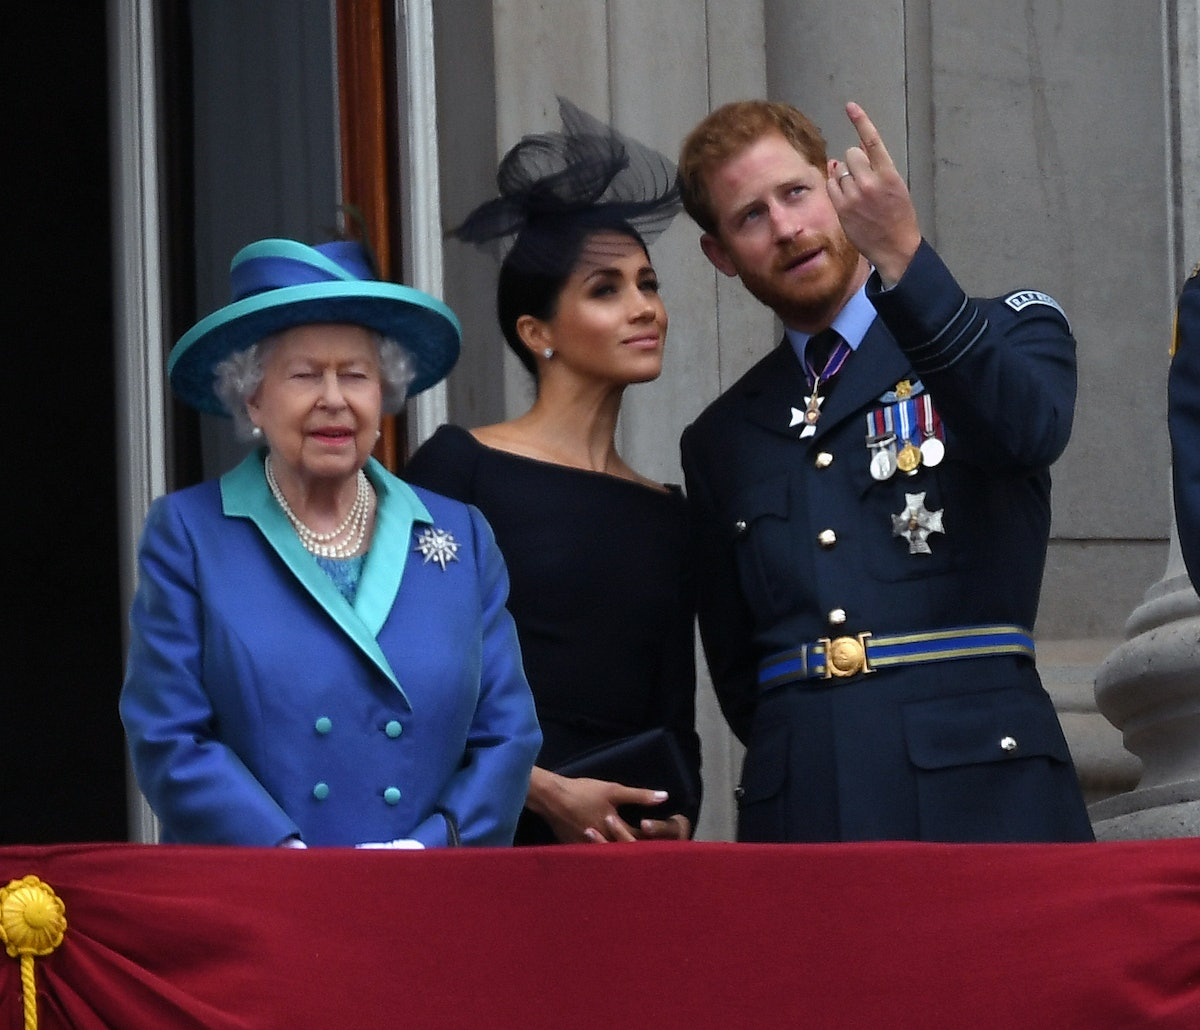 Queen Elizabeth ll, Meghan, Duchess of Sussex and Prince Harry, Duke of Sussex stand on the balcony of Buckingham Palace.